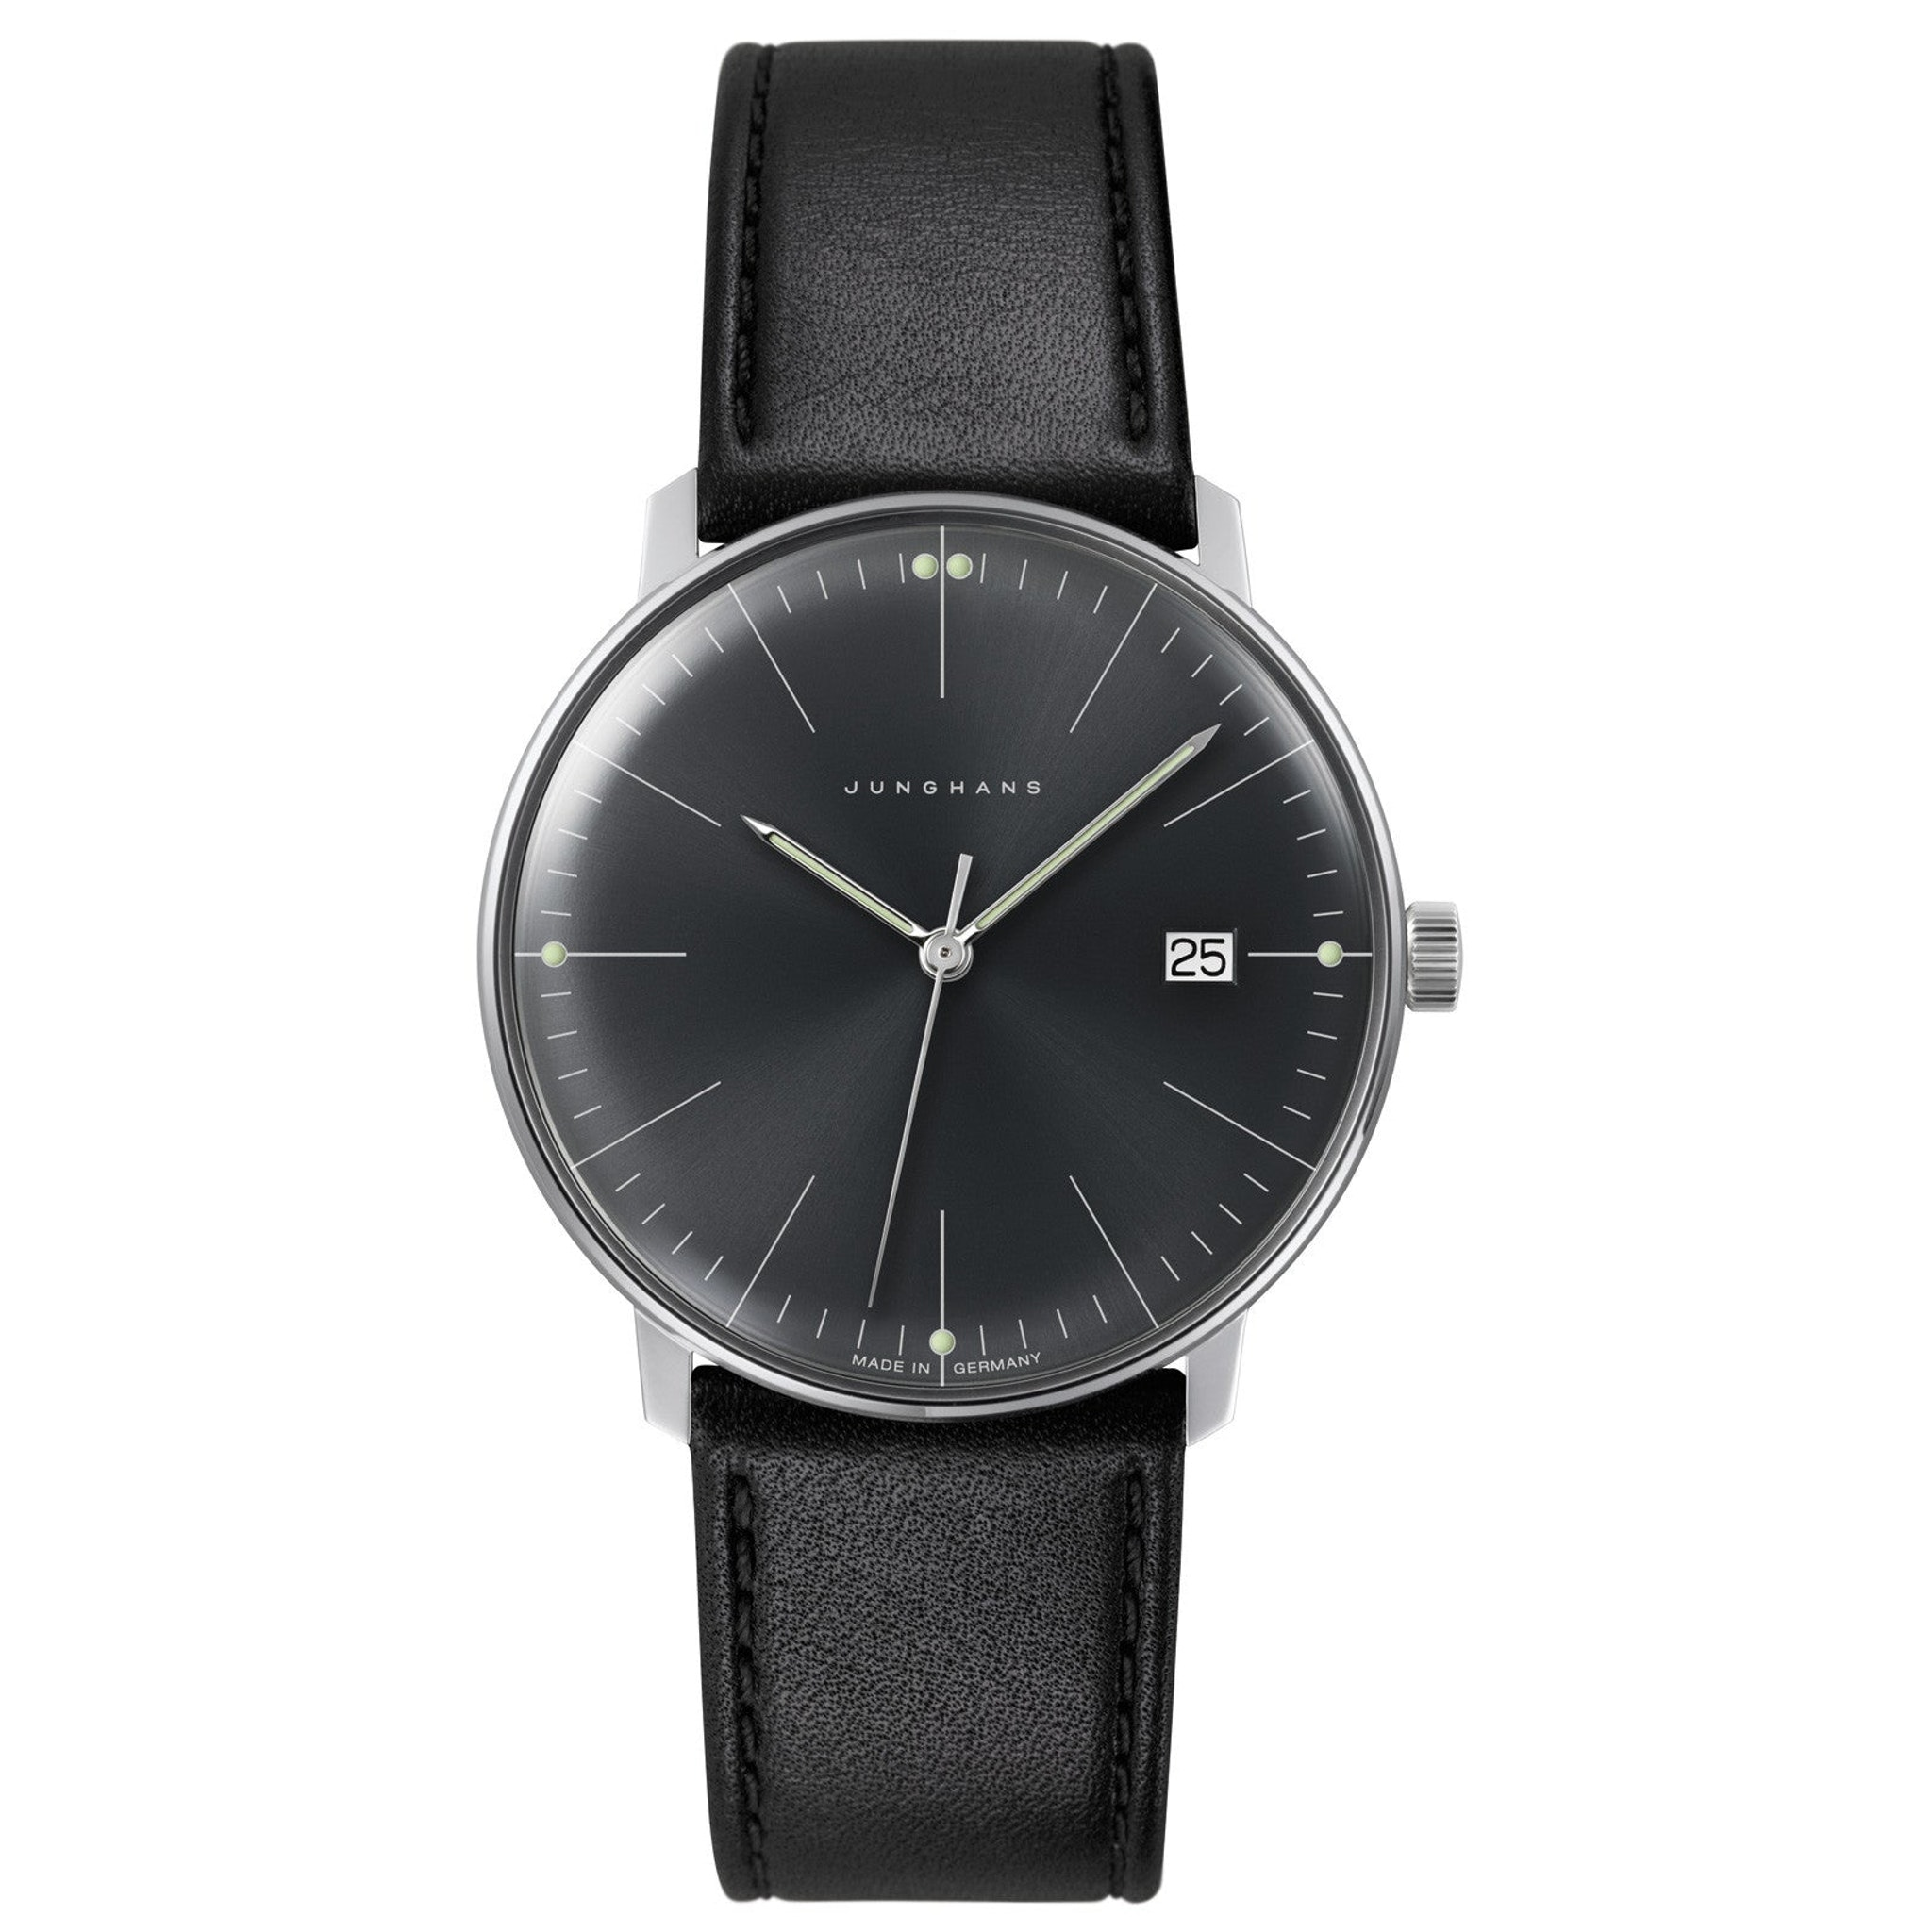 Max Bill 041/4465.00 Quartz watch by Junghans